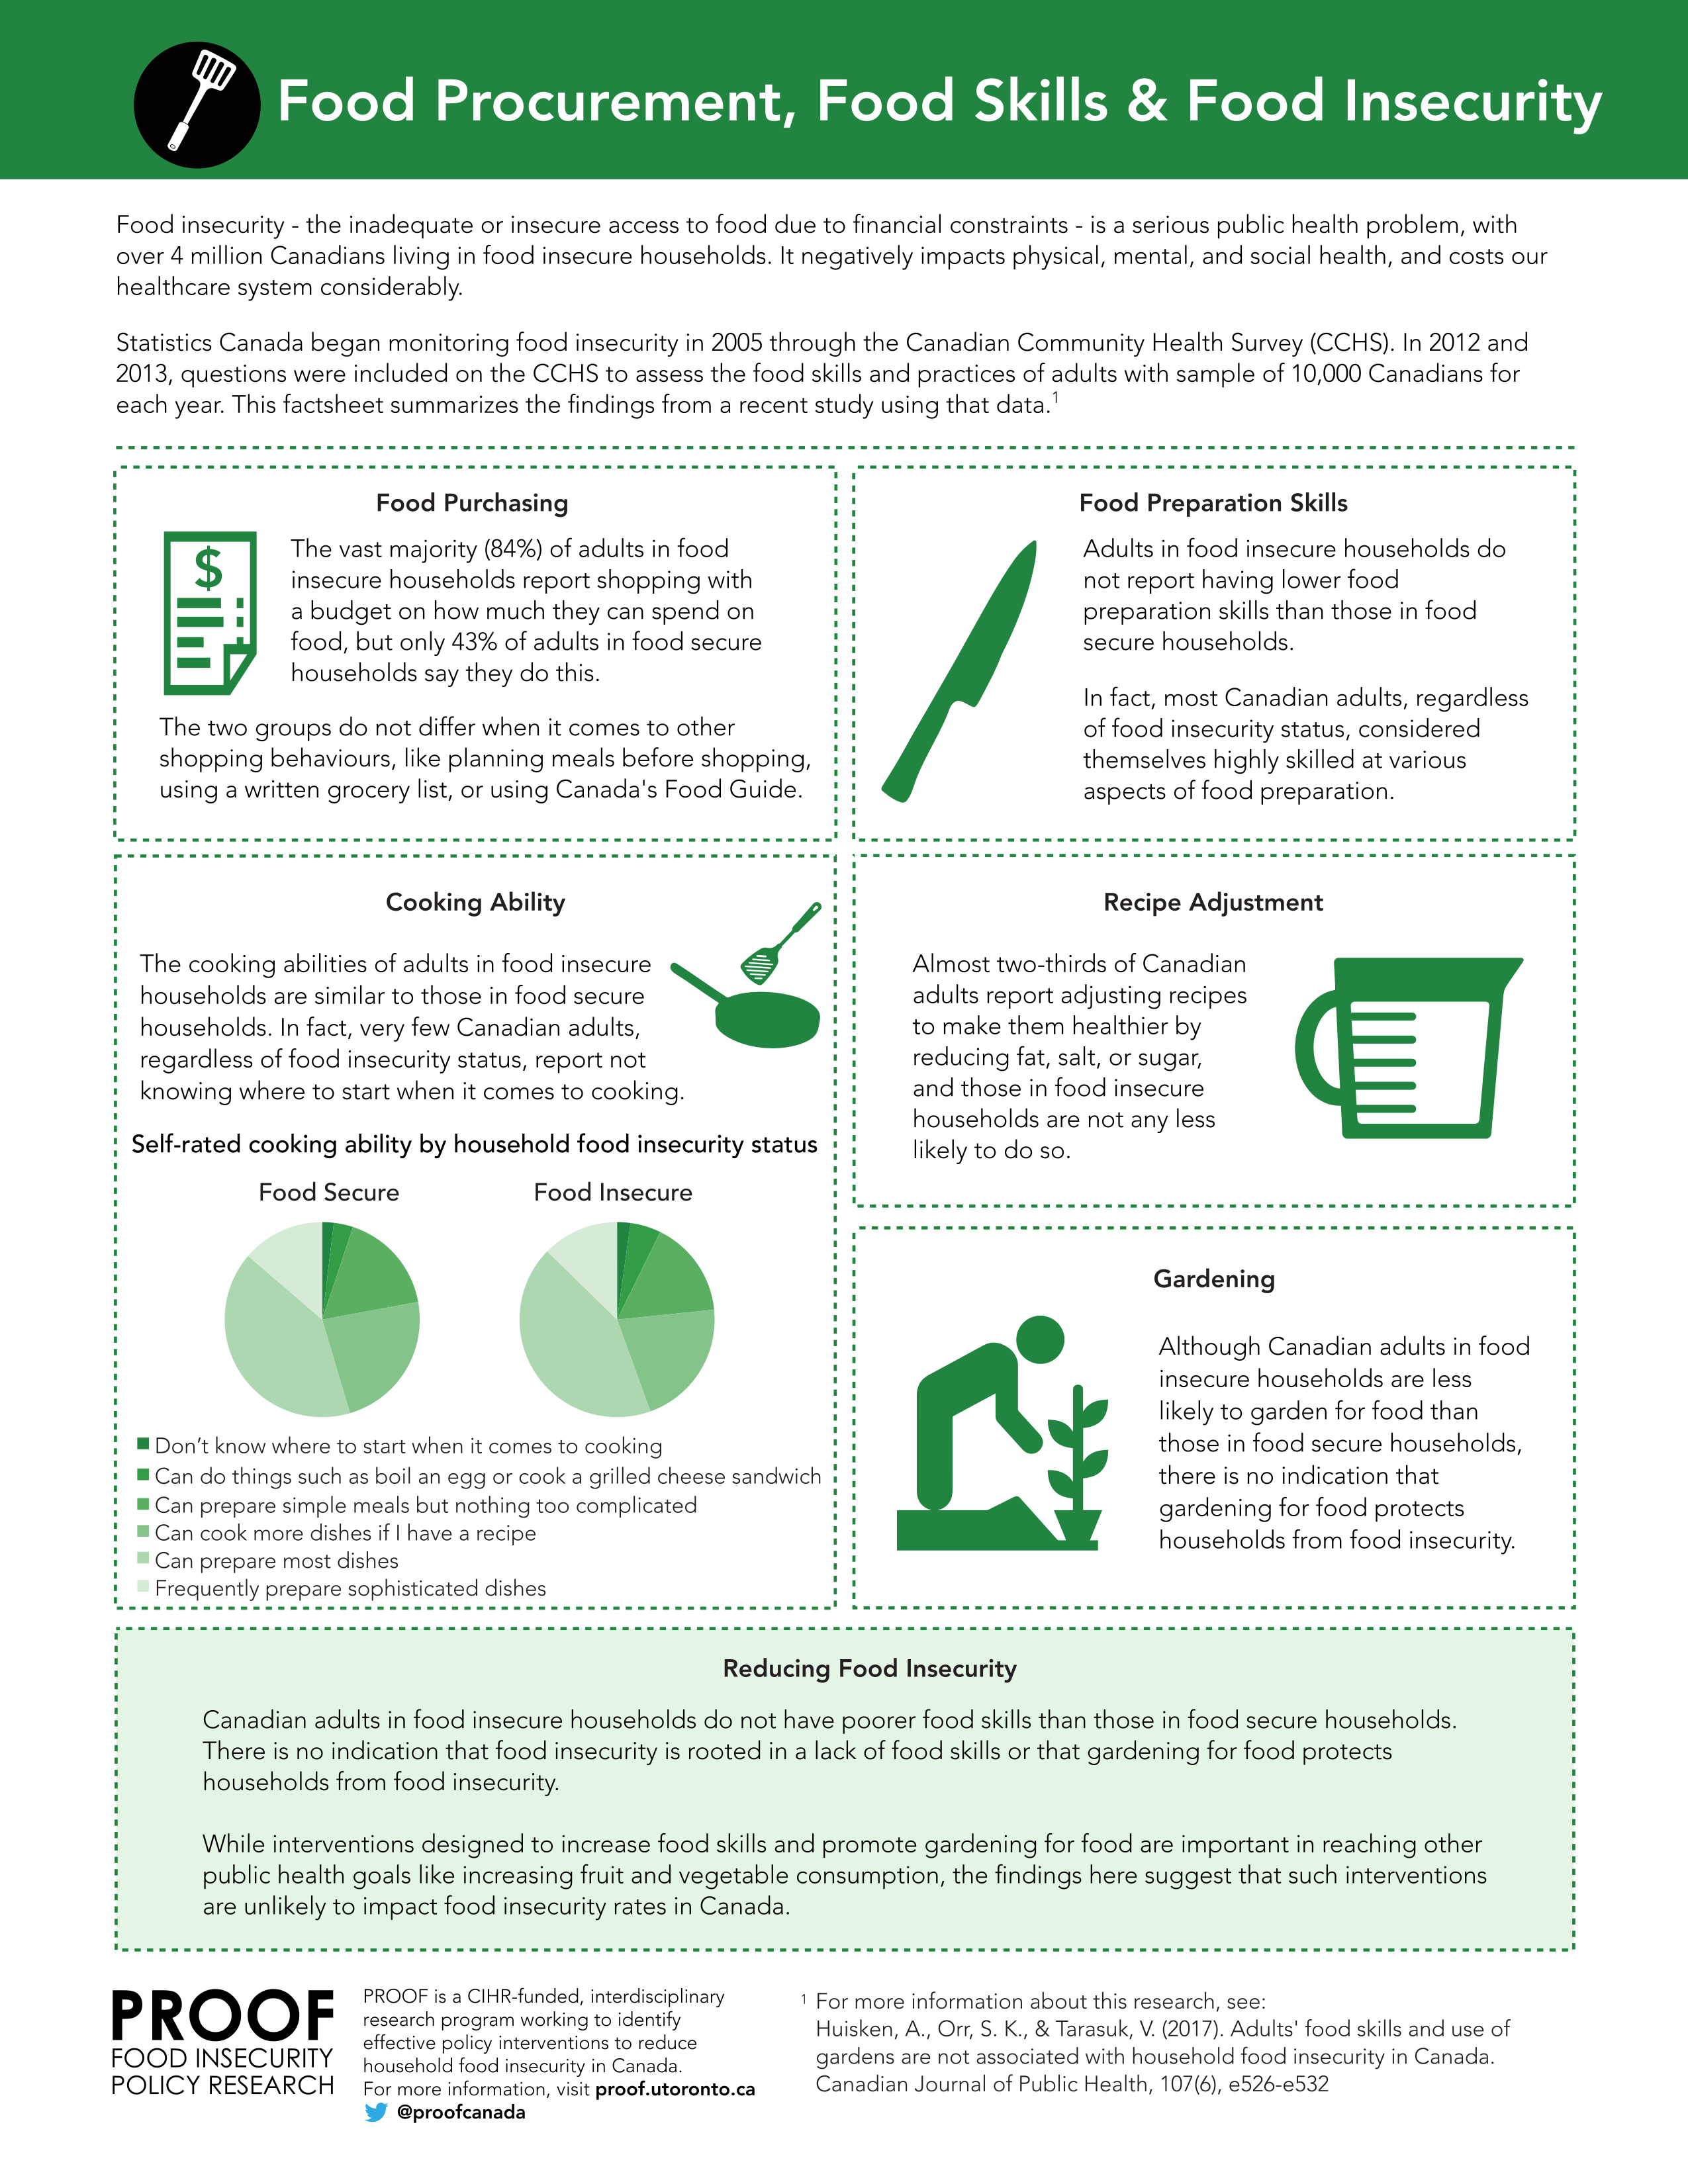 Fact Sheet: Food Procurement, Food Skills & Food Insecurity